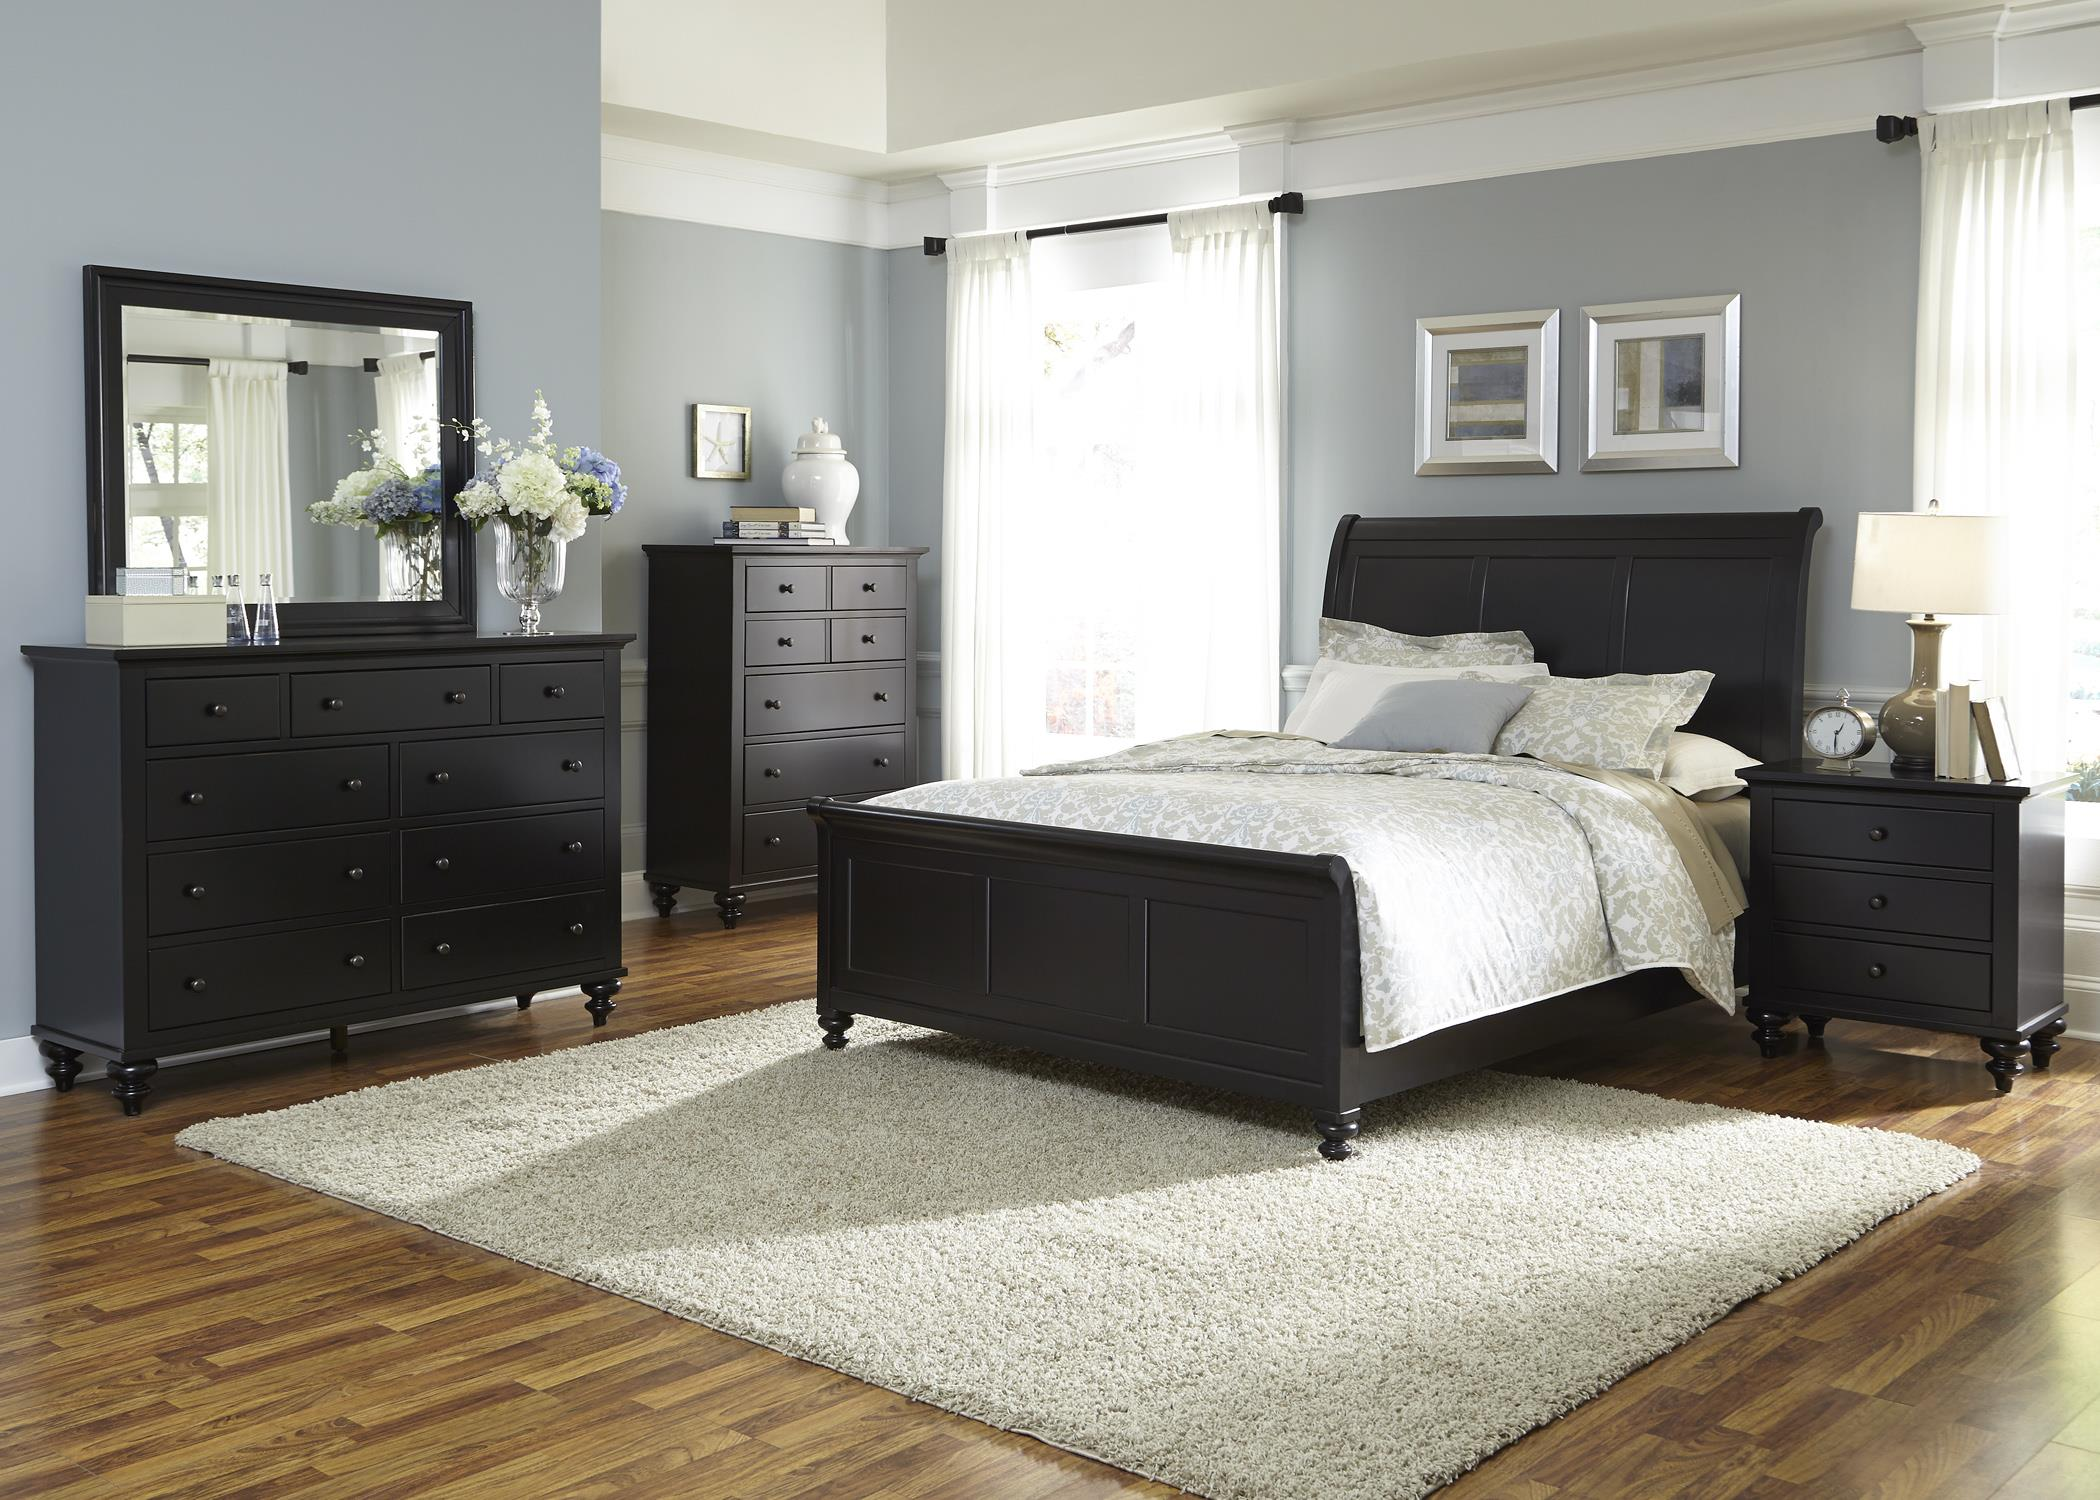 Liberty Furniture Hamilton III King Bedroom Group - Item Number: 441-BR K Bedroom Group 1